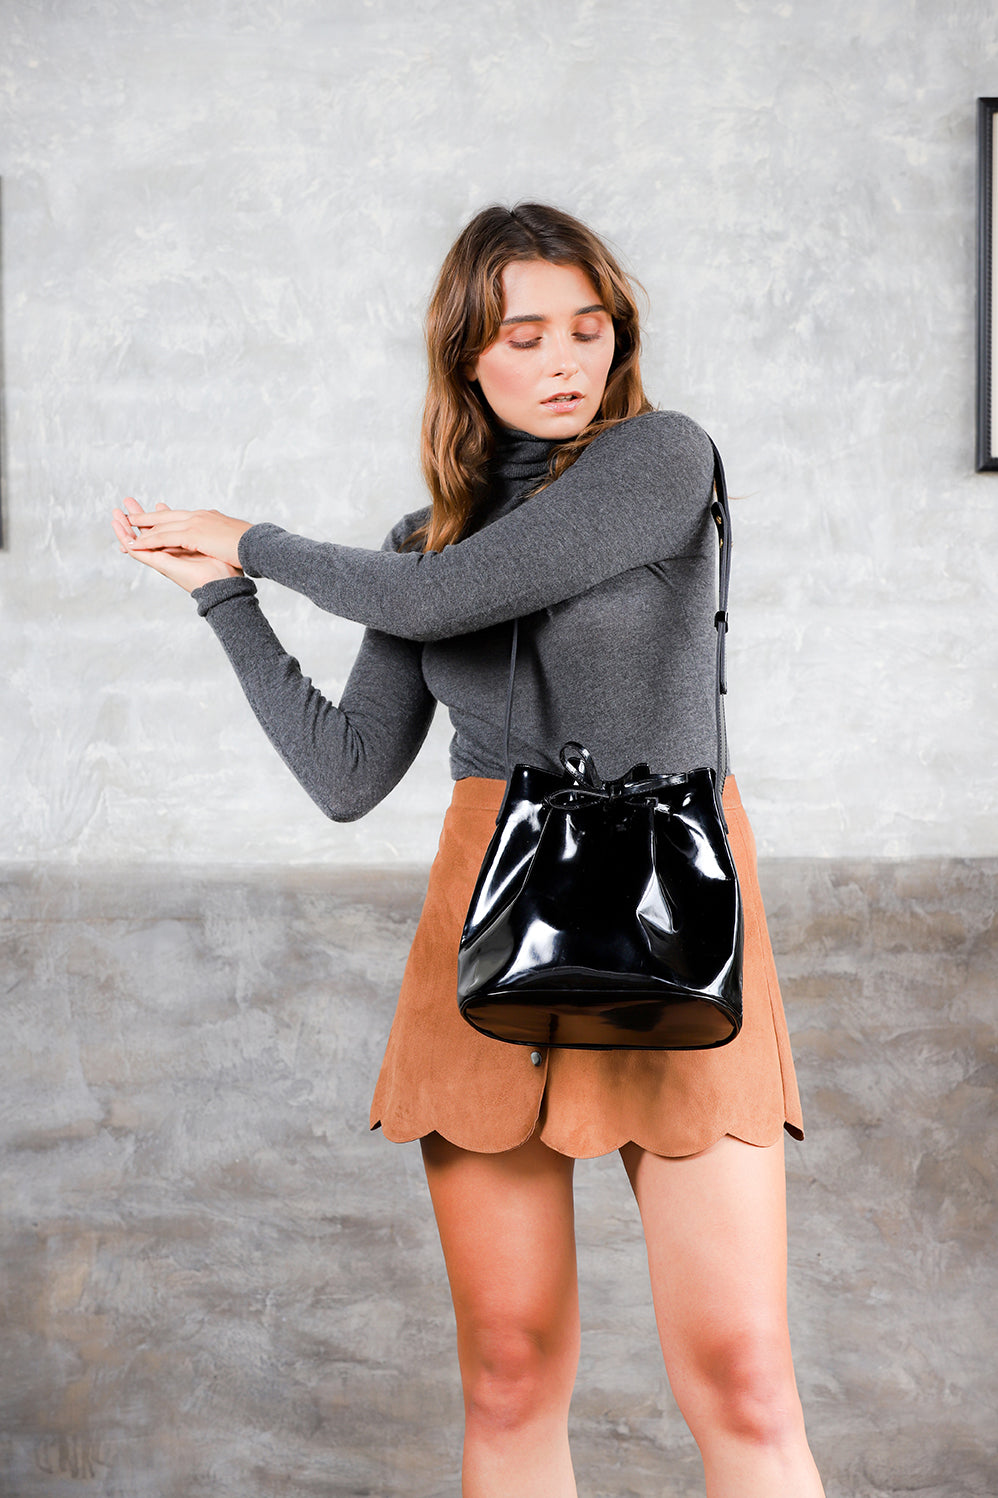 Mansur Gavriel bucket patent leather black bag; black patent leather crossbody bag; women bucket bag; leather bucket bag; italian leather patent leather mansur gavriel bag